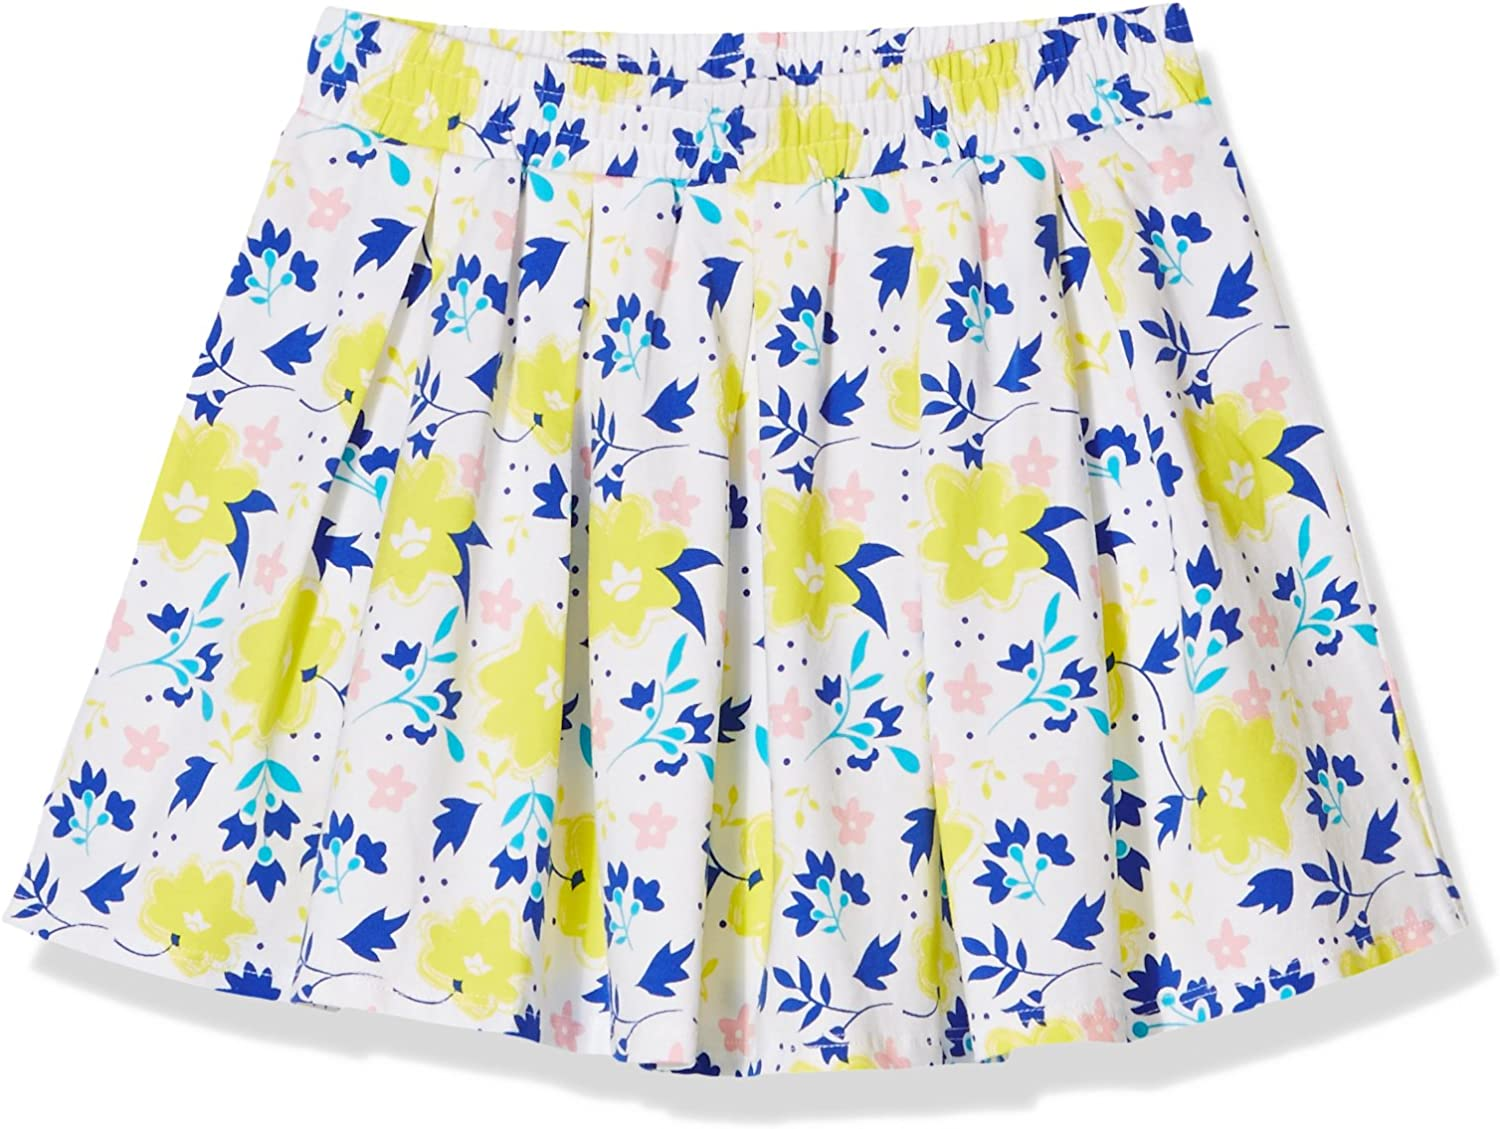 A for Awesome Girls Pleated Allover Floral Printed Skirt